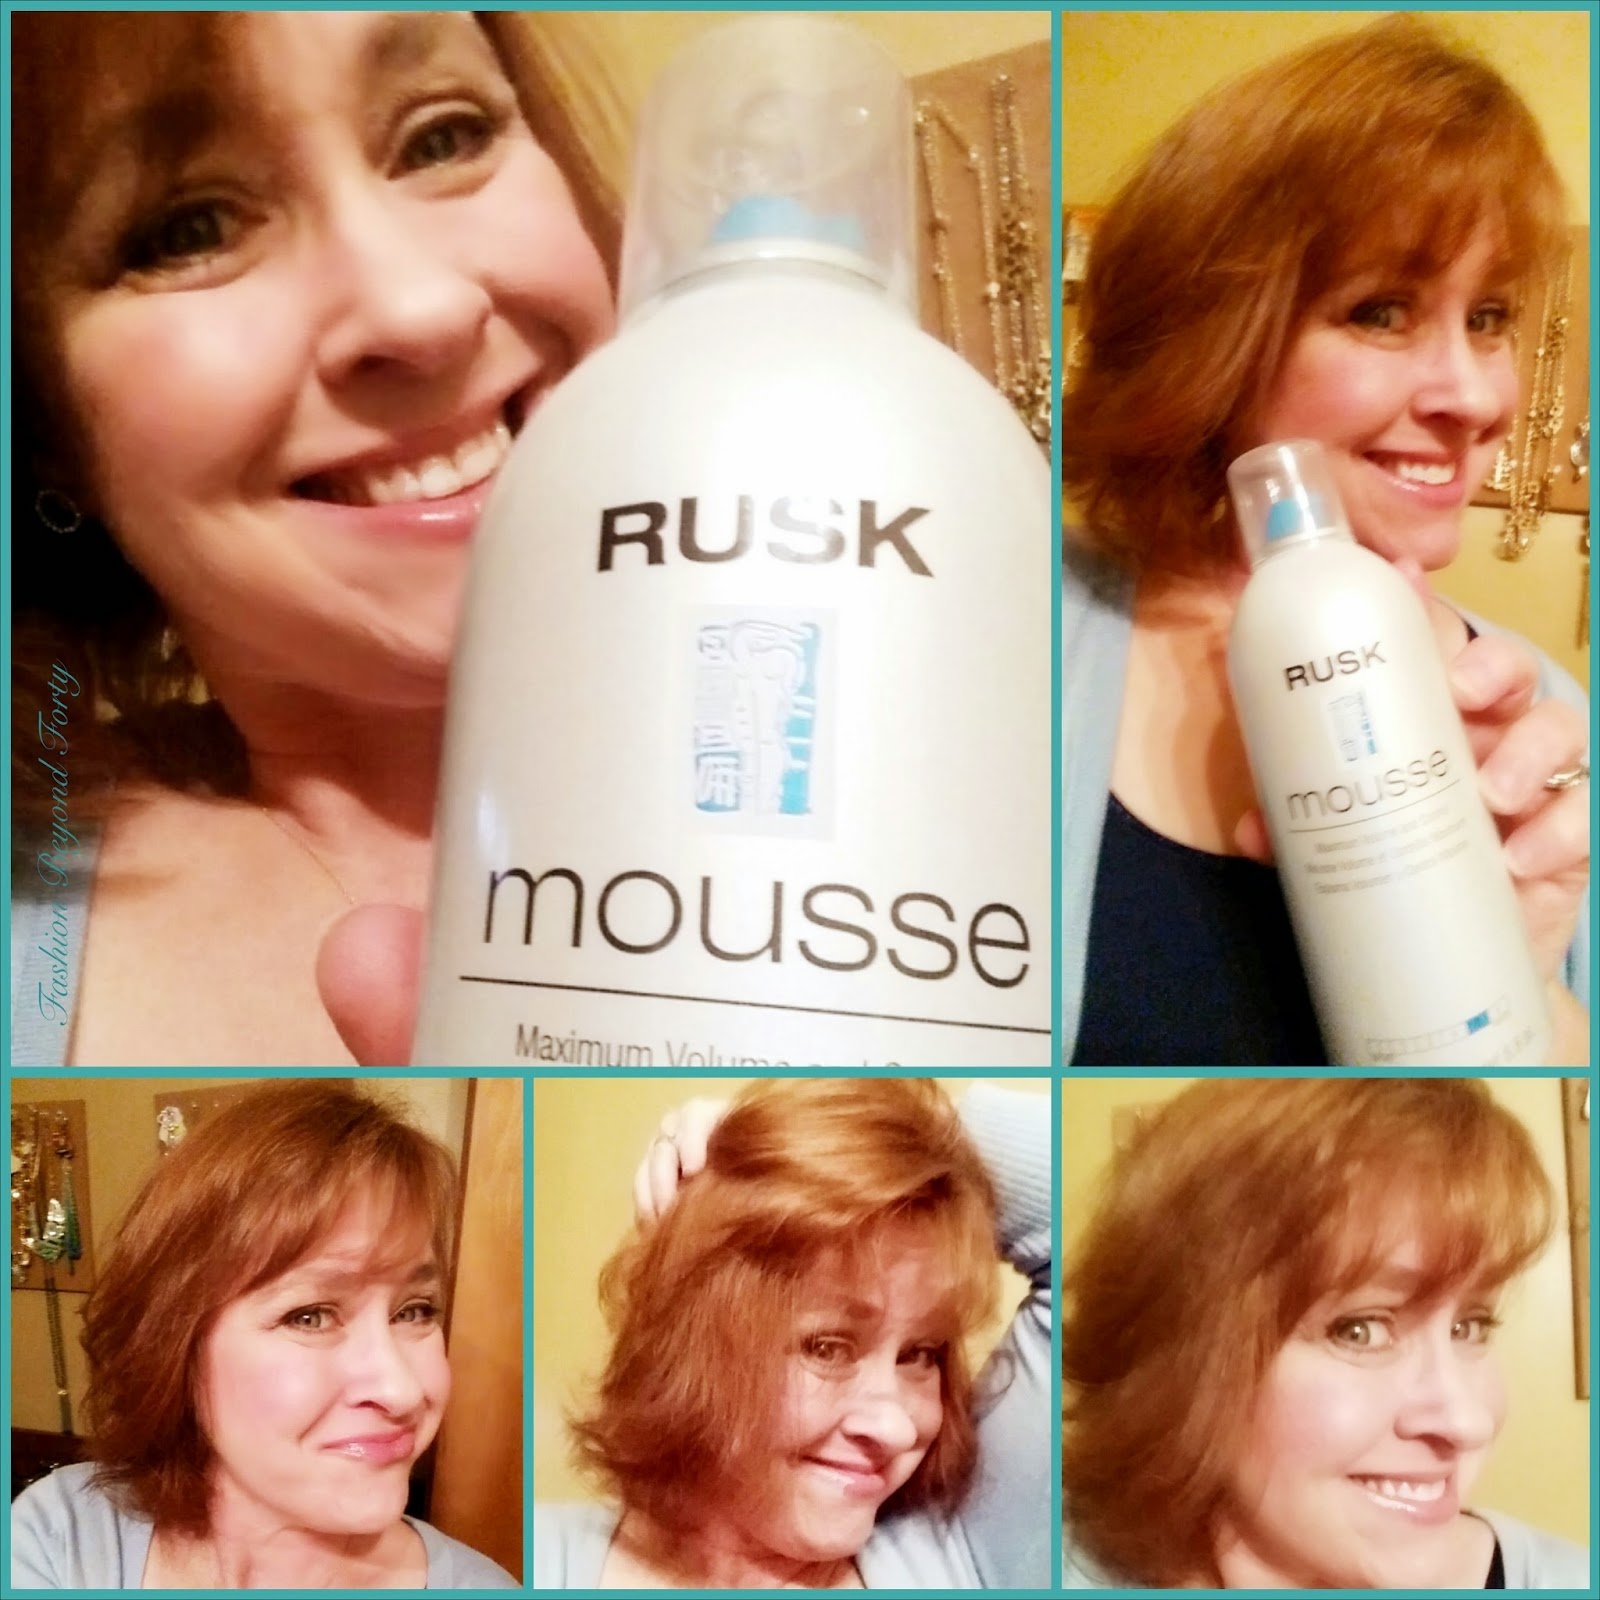 Rusk Mousse - Maximum Volume & Control Review + Giveaway